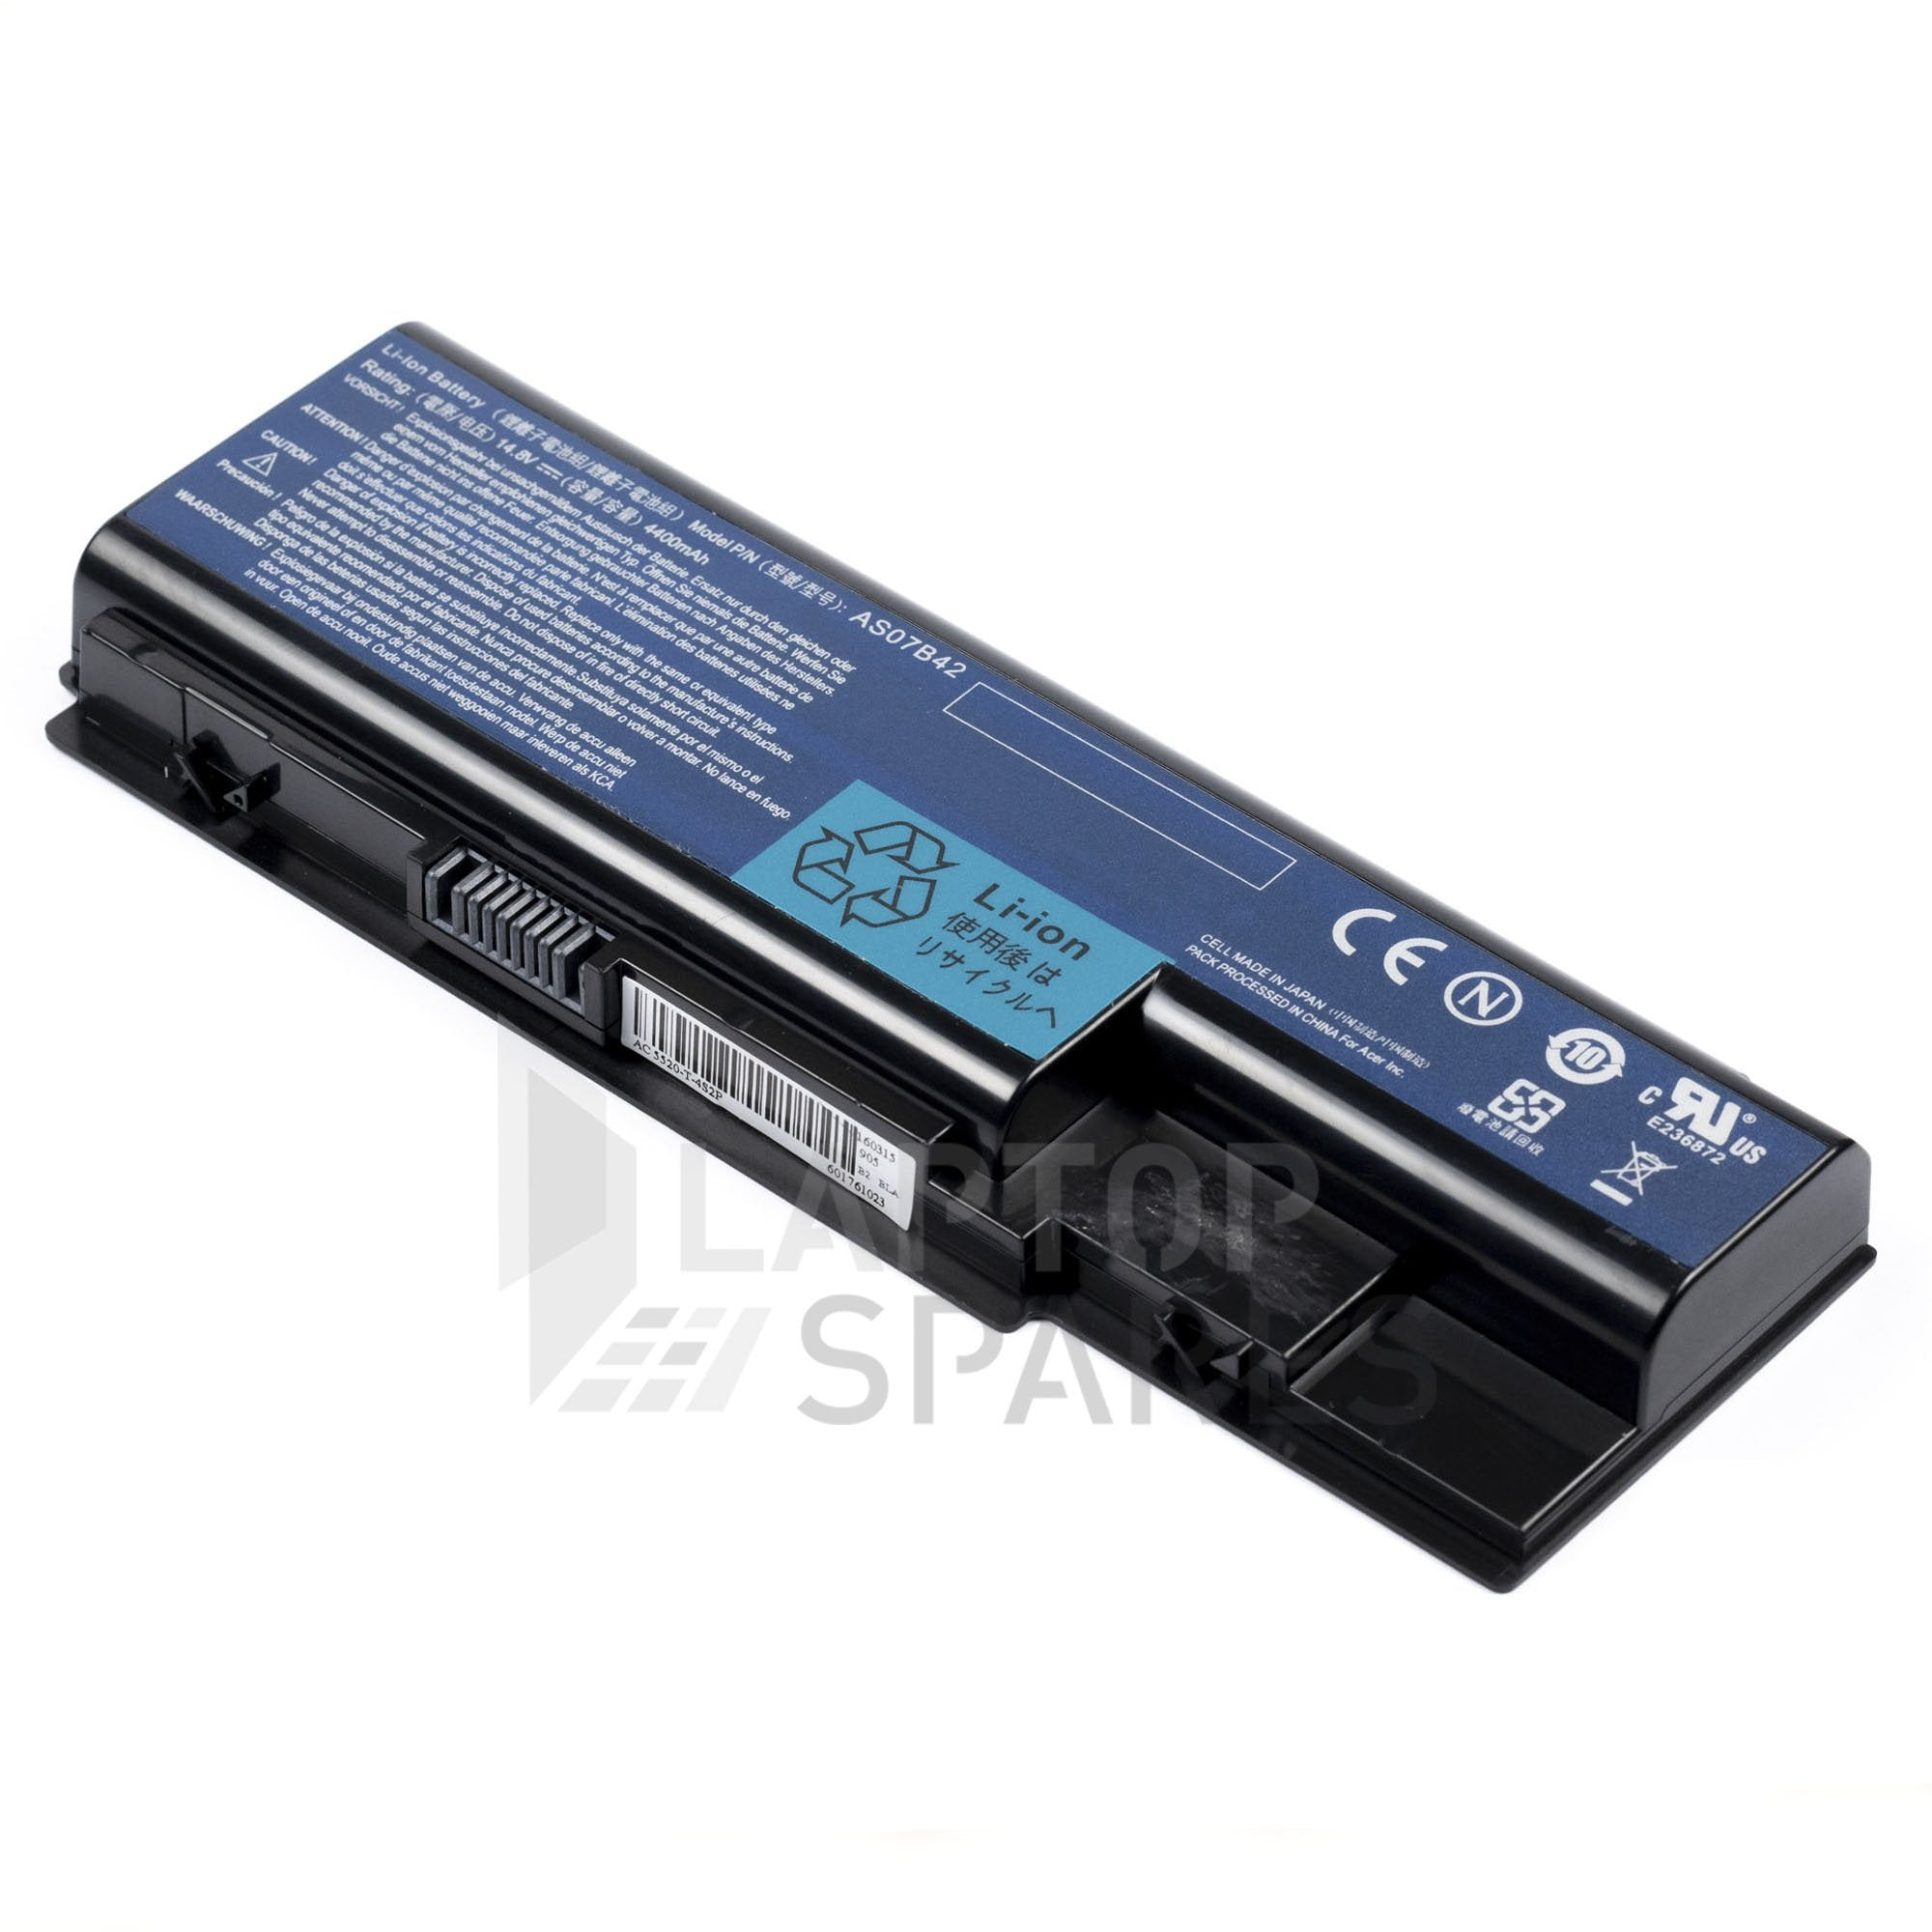 Acer Aspire 5710 5720 5739 4400mAh 6 Cell Battery